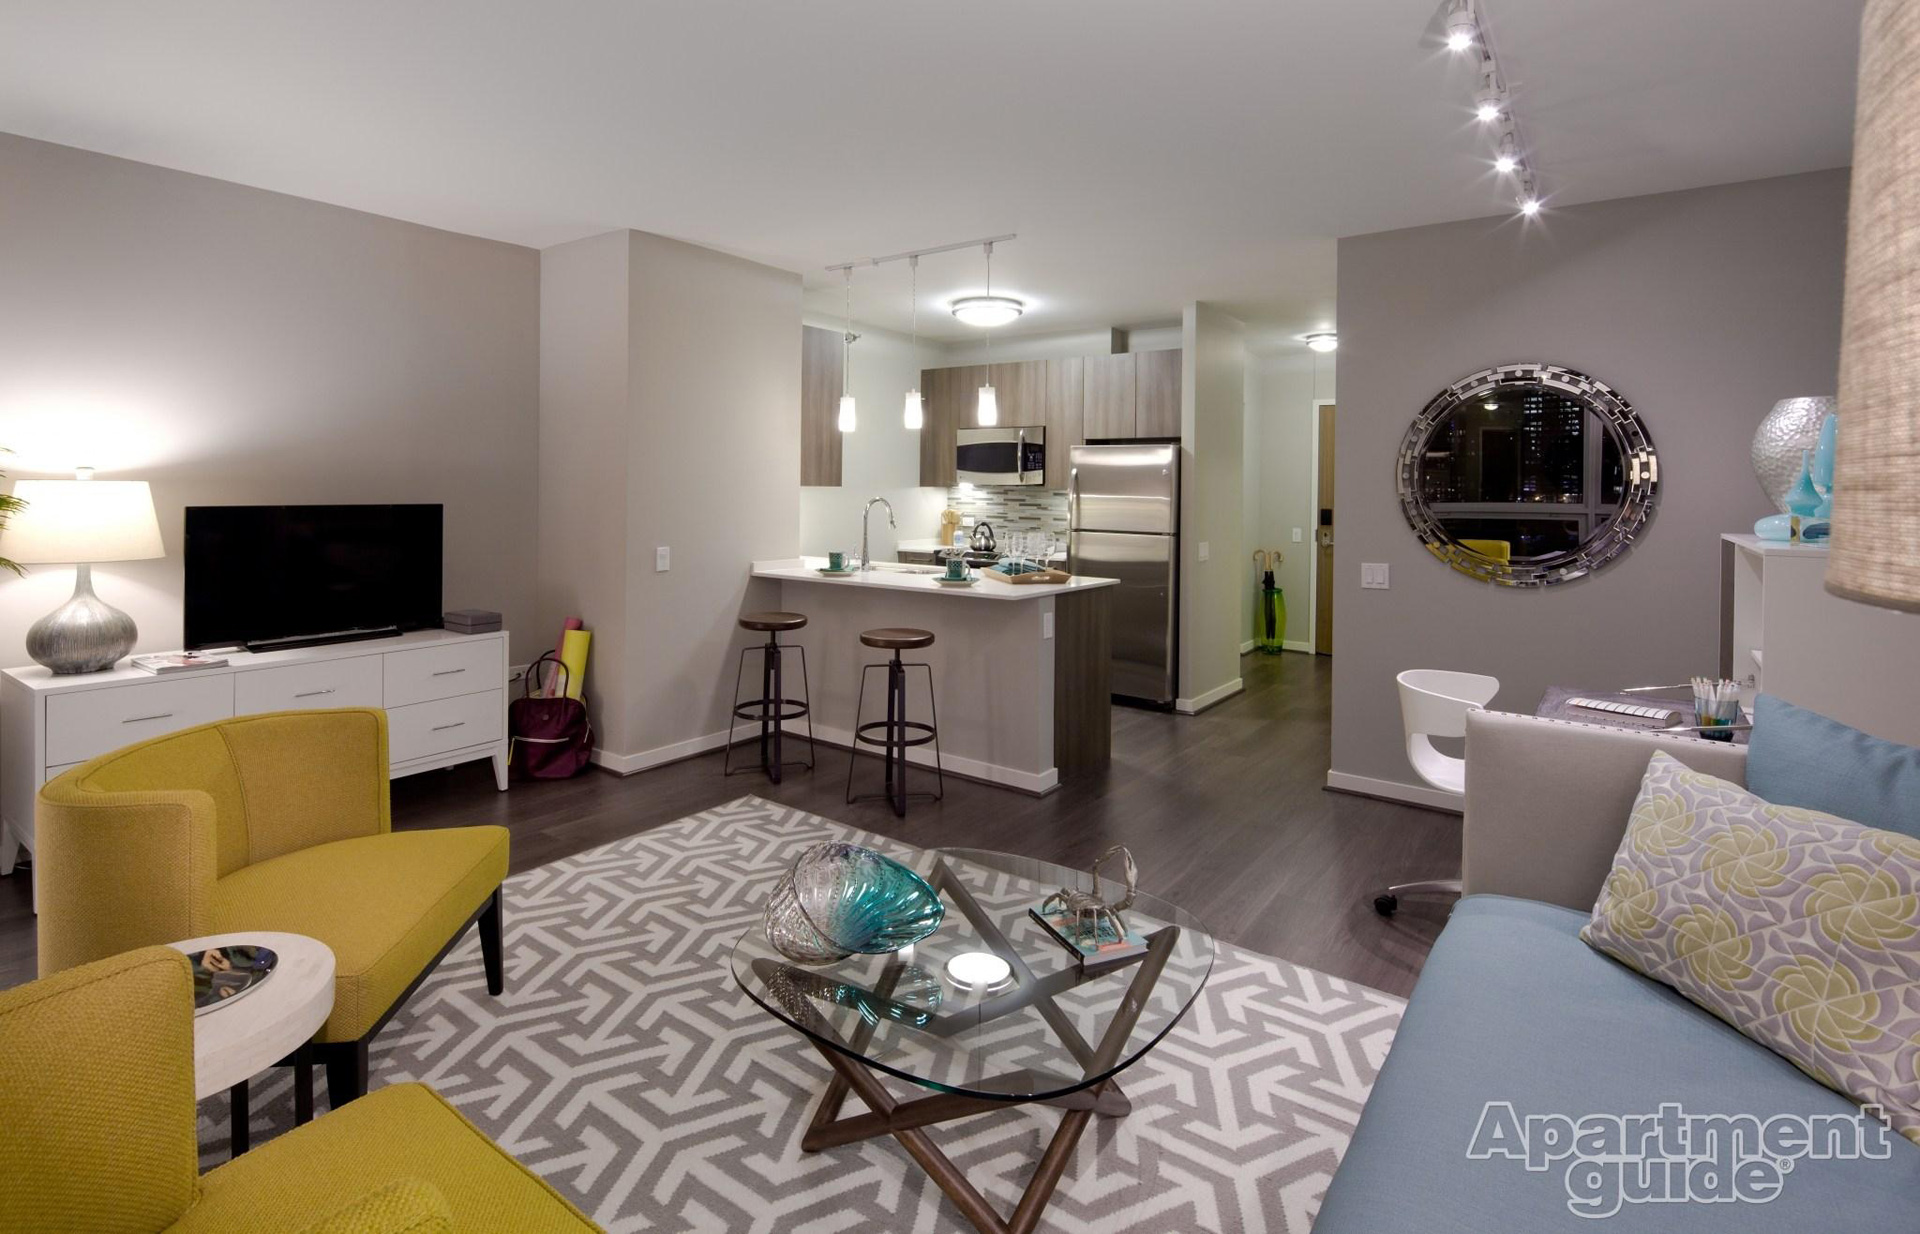 Apartment rental for Nick and Andi